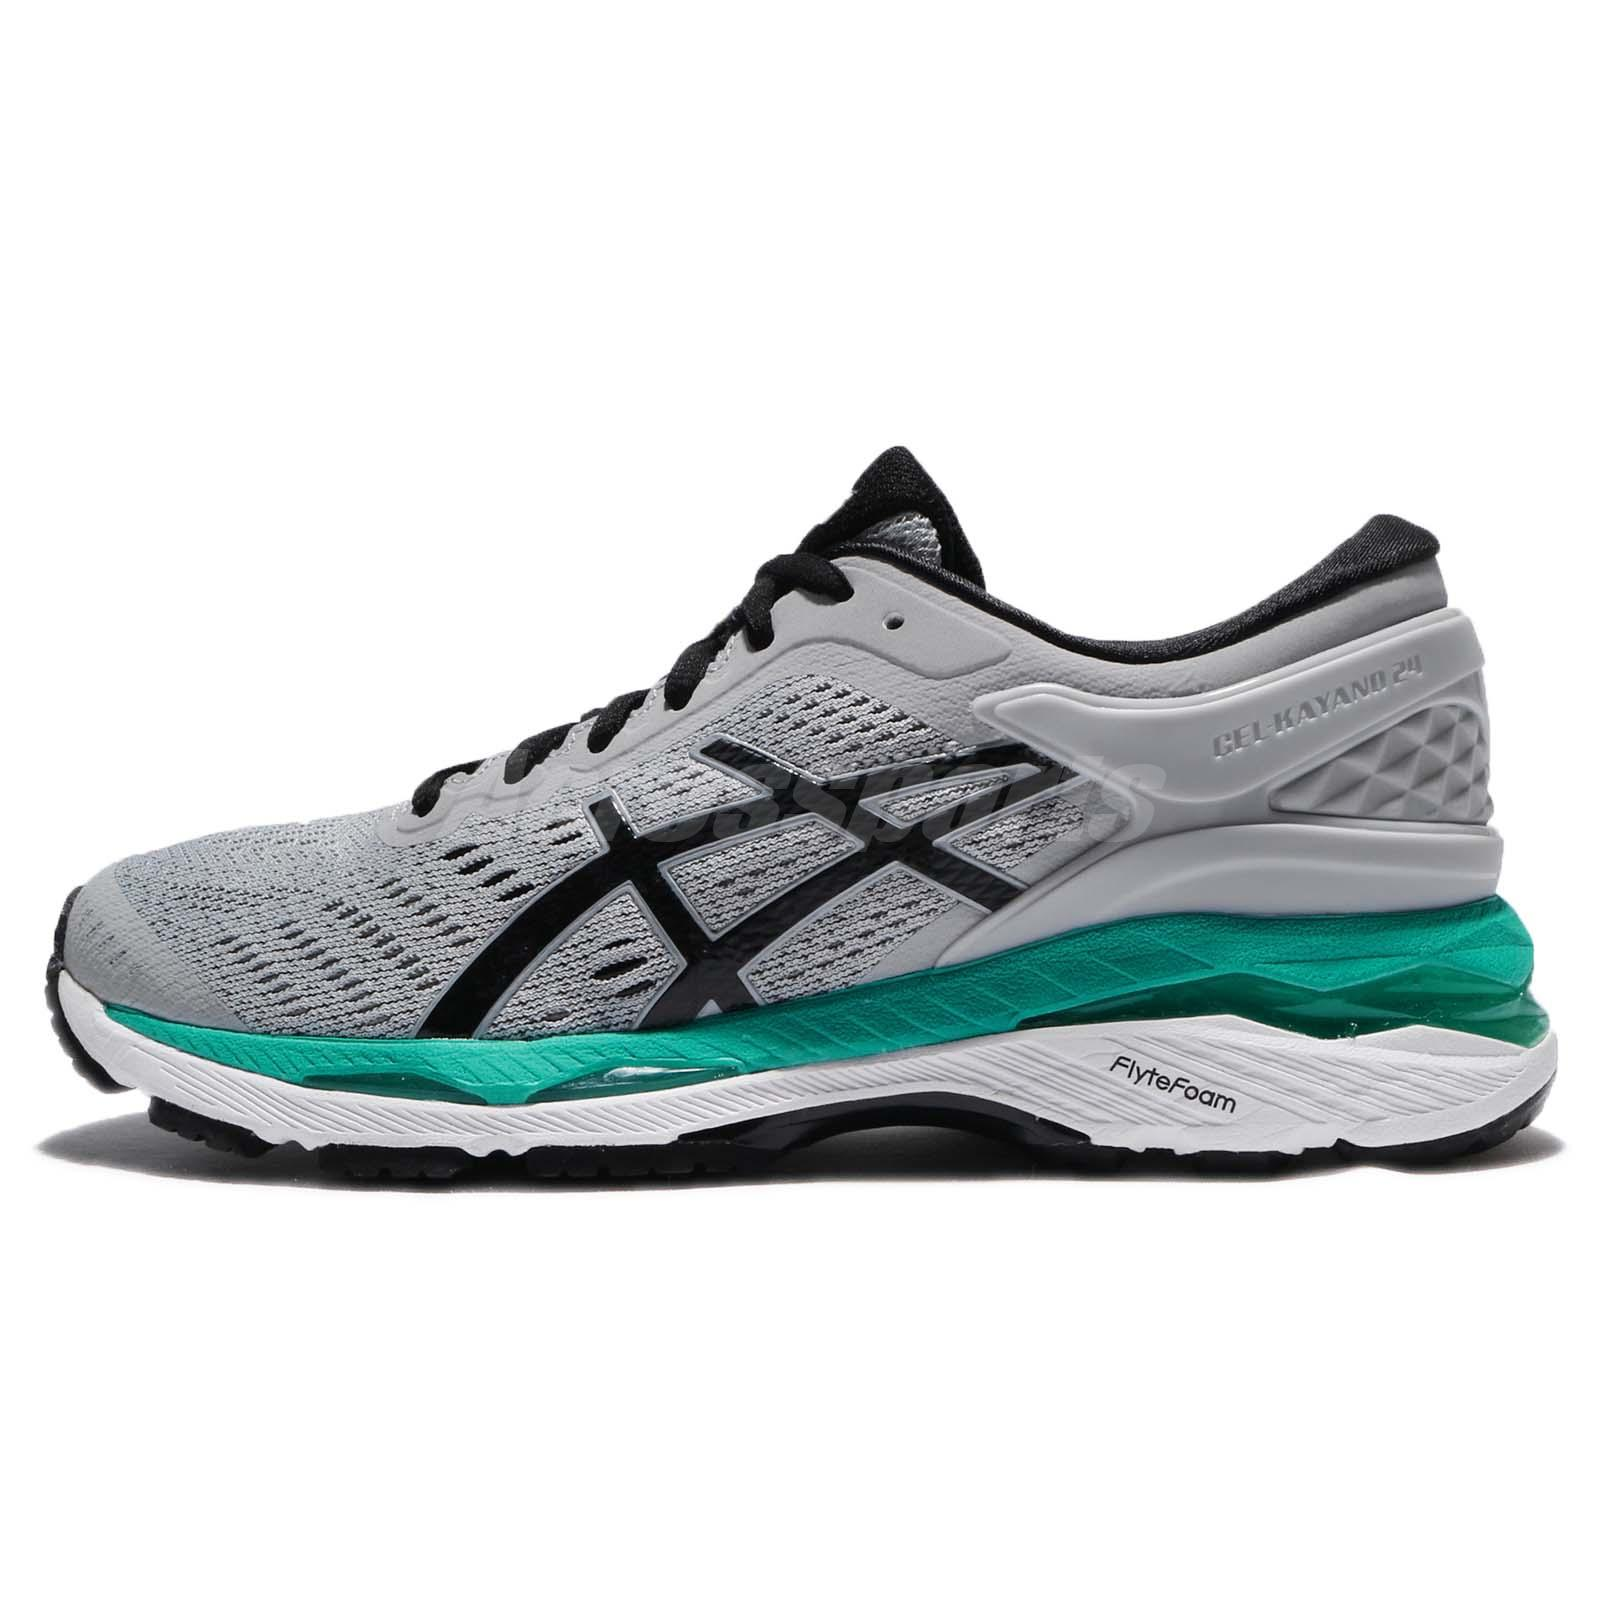 7e1ab301a713 Asics Gel-Kayano 24 Grey Black Green Women Running Shoes Sneakers T799N-9690